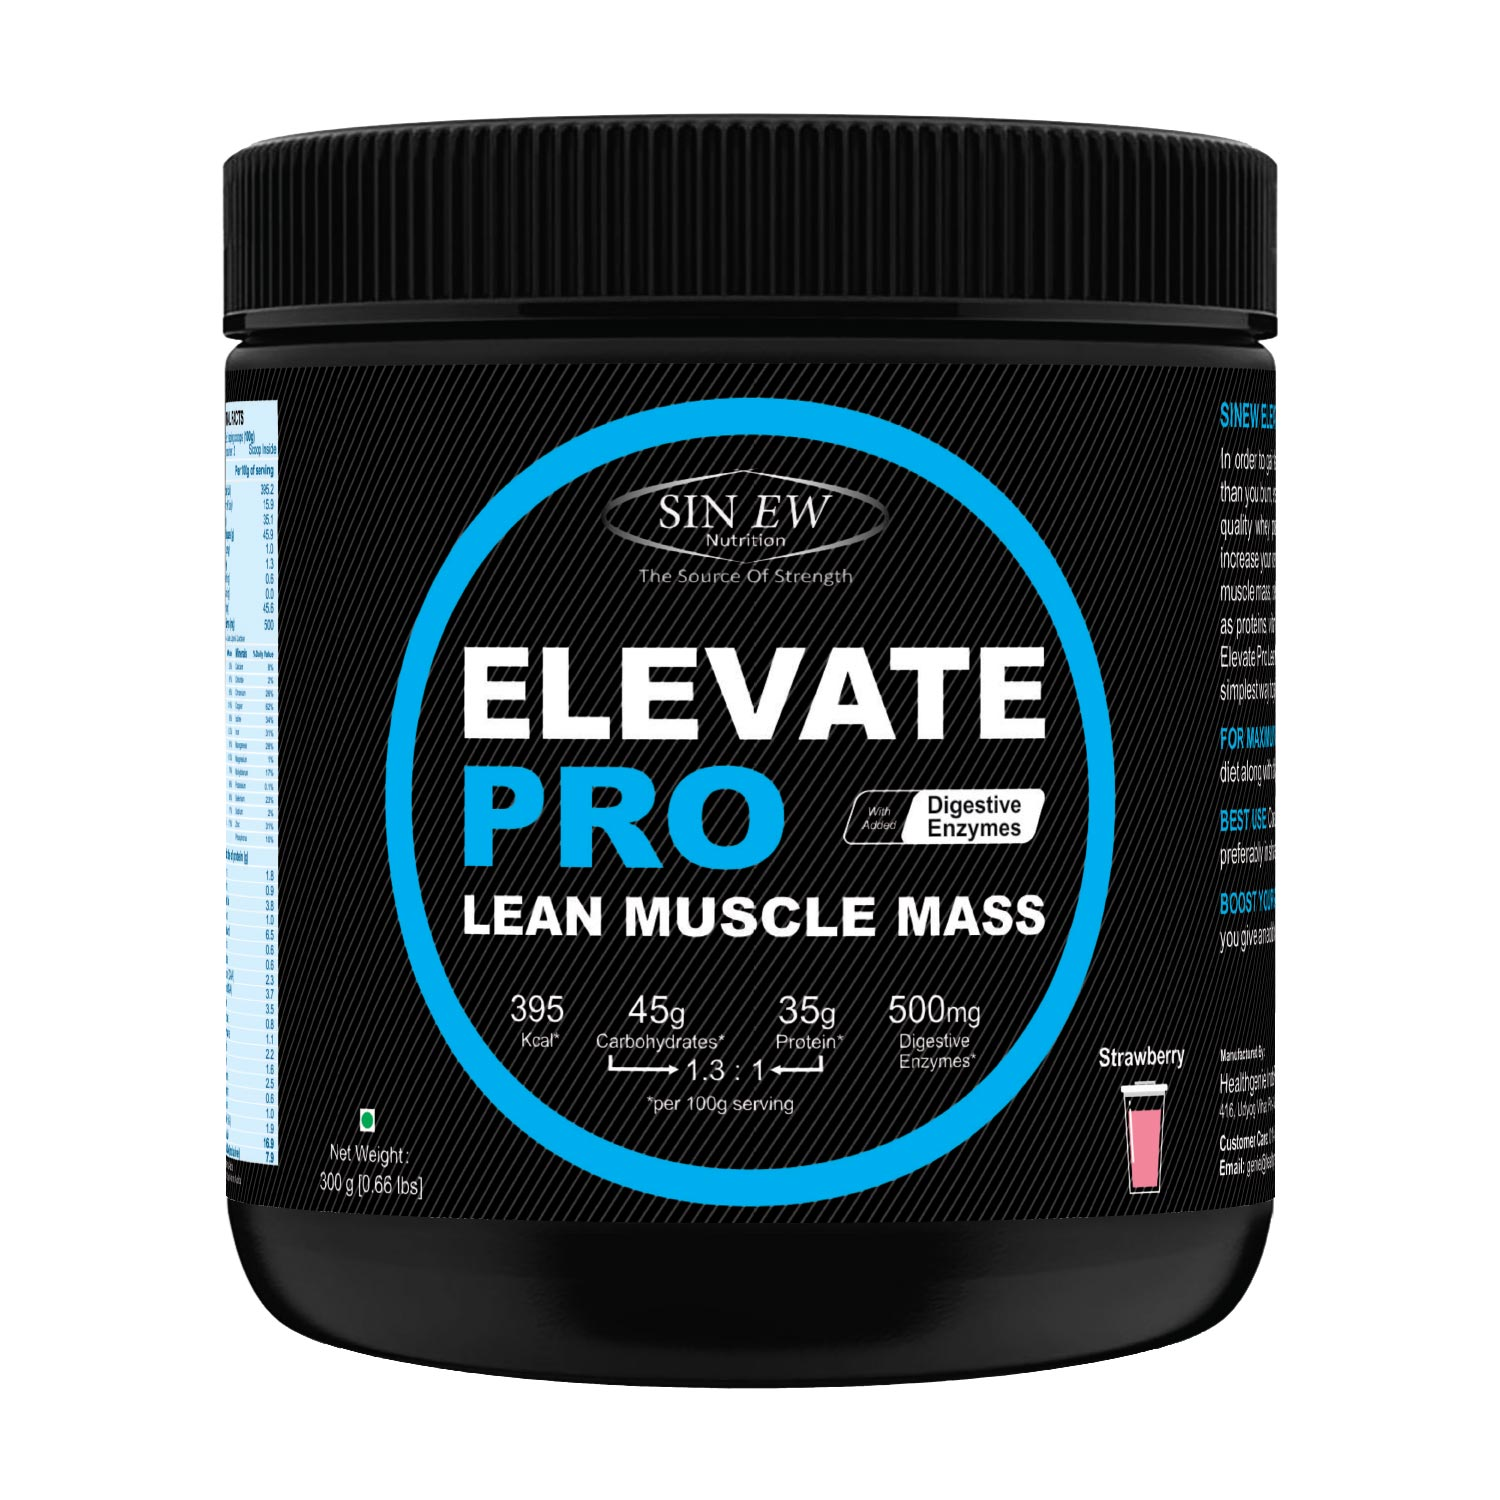 Elevate Pro Lean Muscle Mass (strawberry)300g F